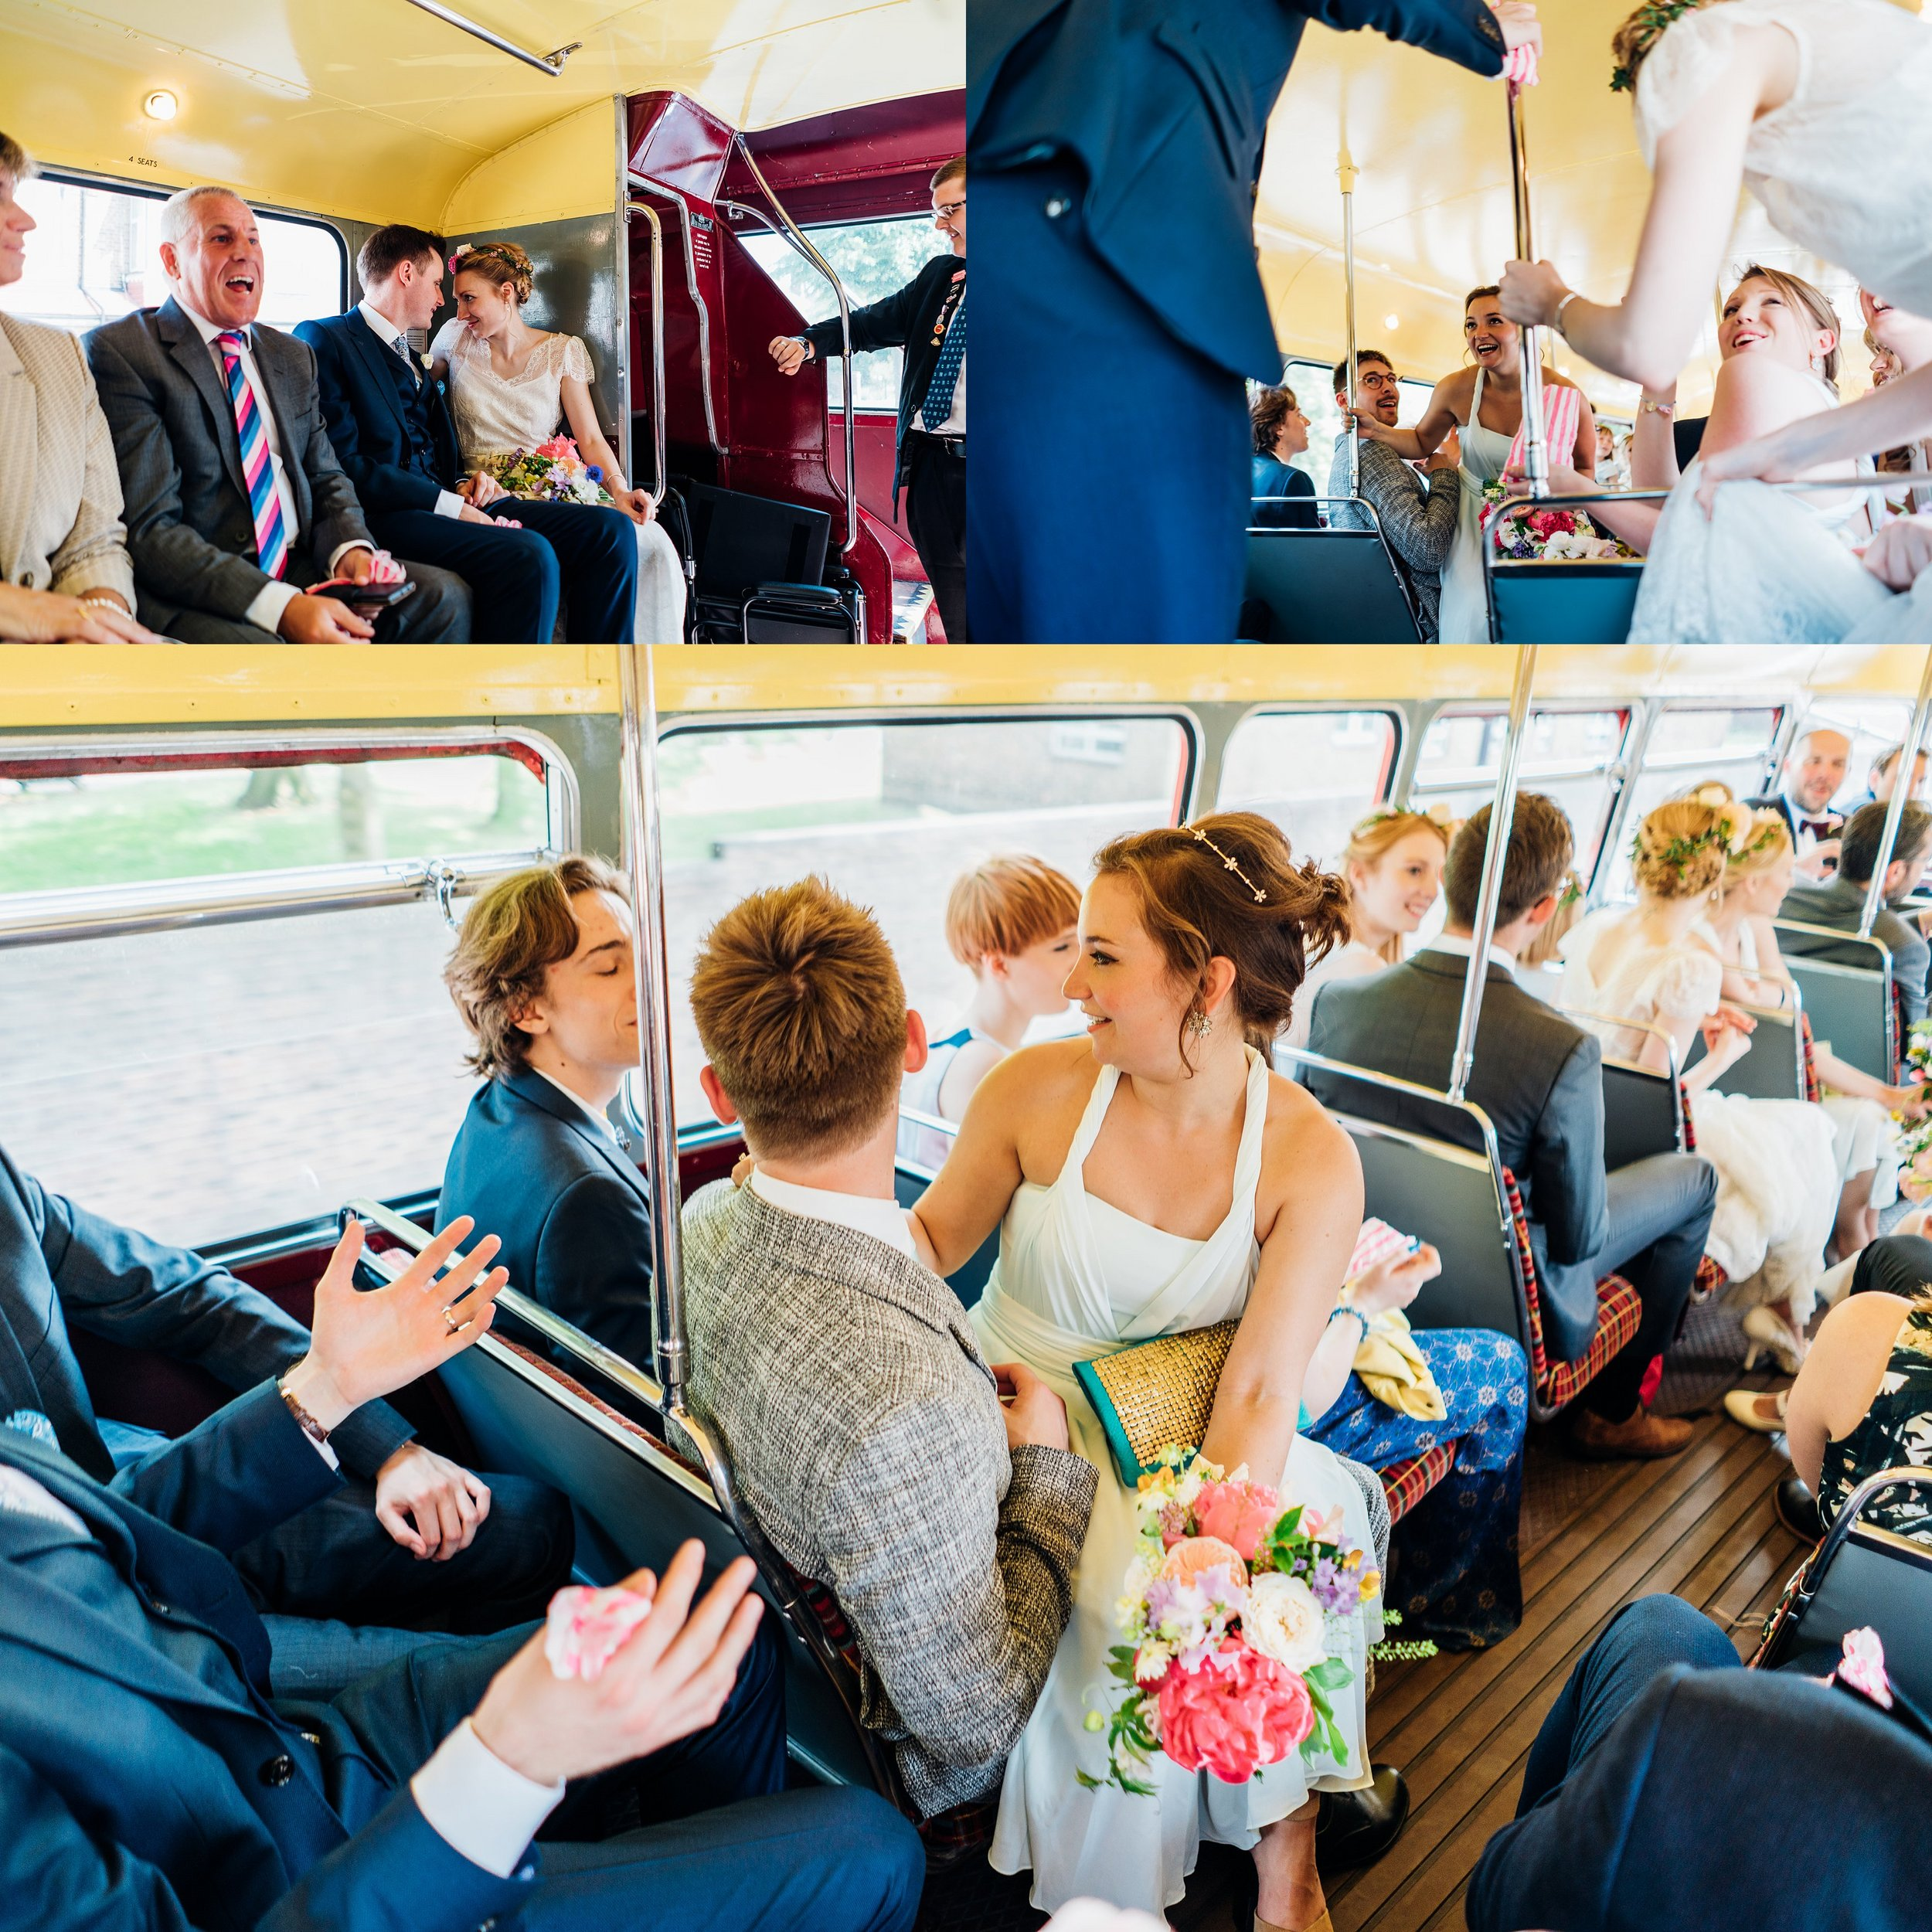 ALTERNATIVE KEW GARDEN AND BIG RED BUS LONDON WEDDING_0019.jpg